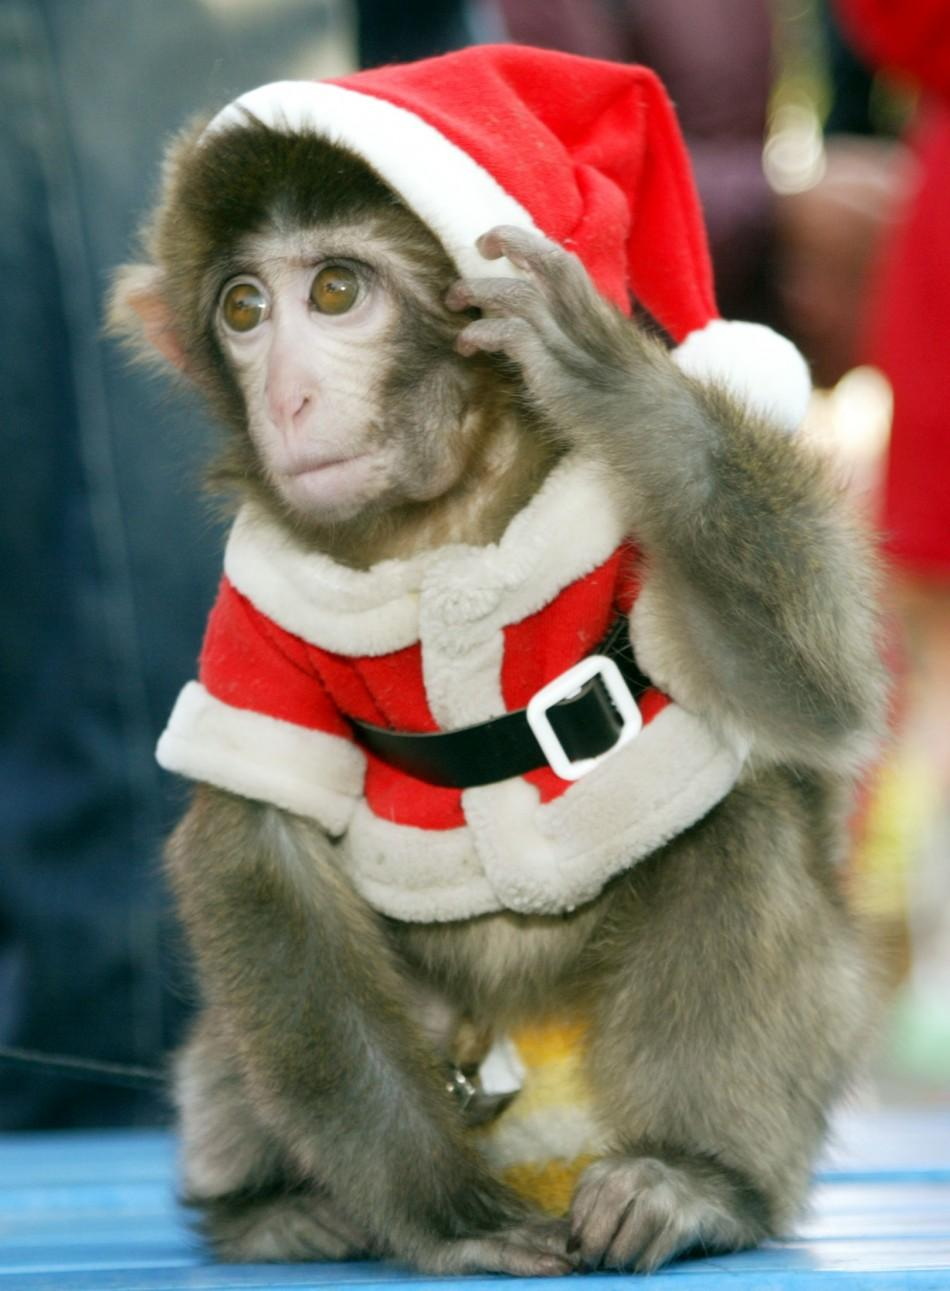 Monkey dressed in Santa Claus outfit